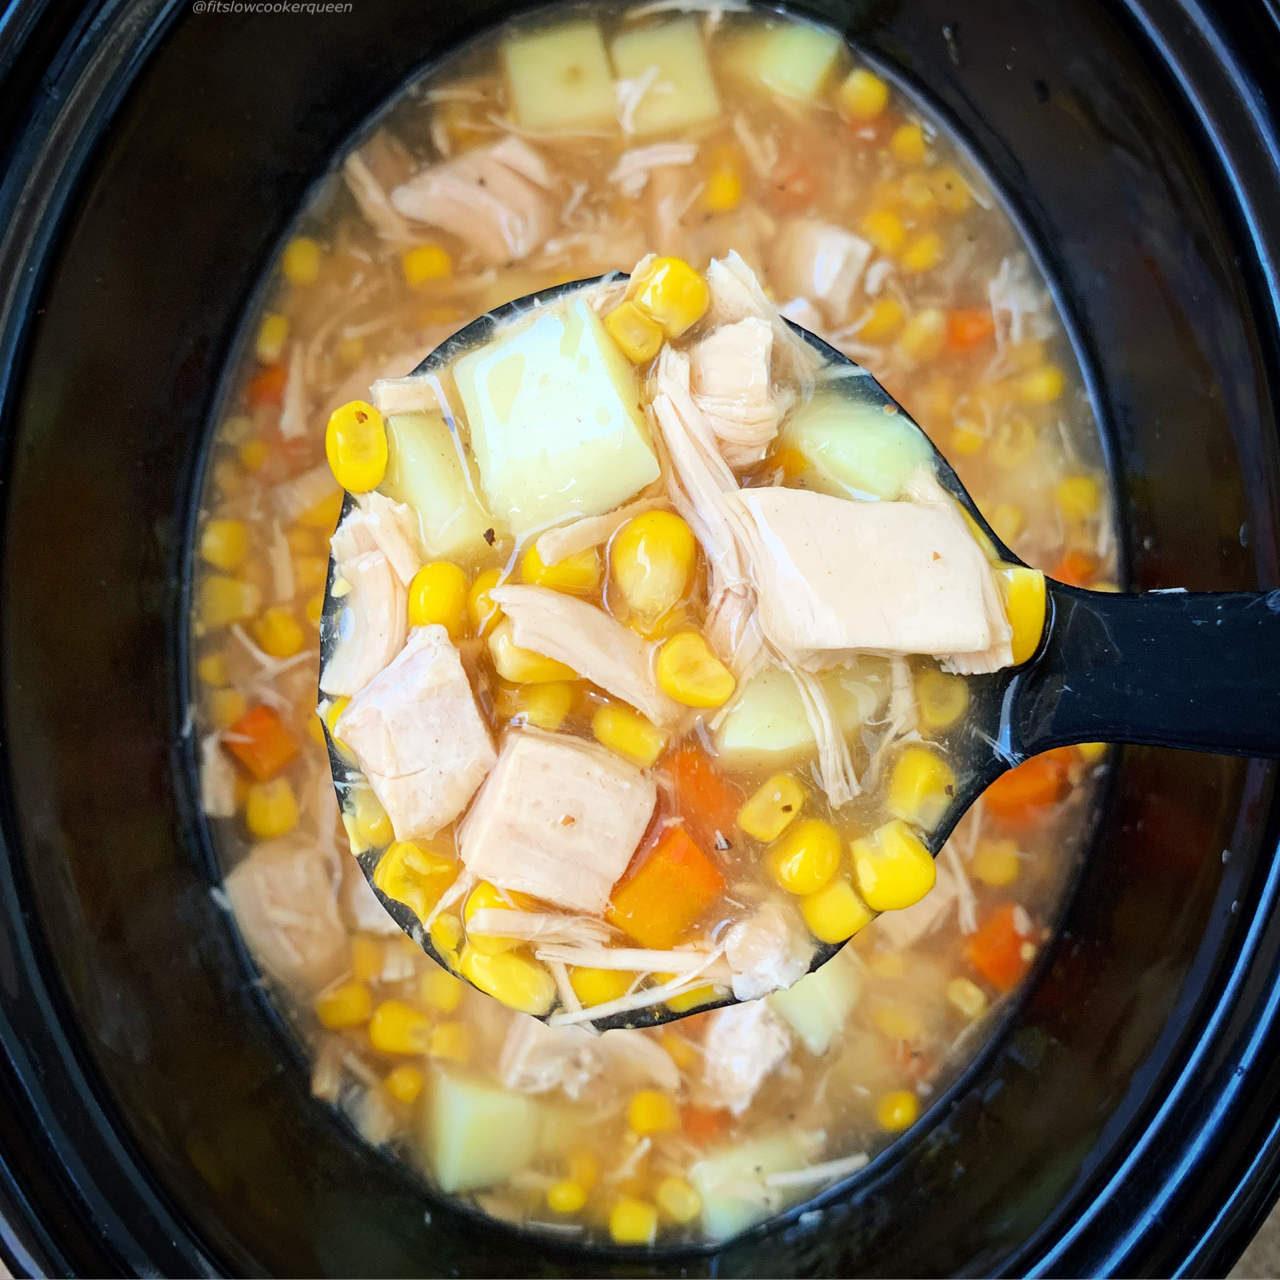 Whether it's Thanksgiving or not, toss your leftover turkey in the slow cooker or Instant Pot for this easy turkey corn chowder recipe.